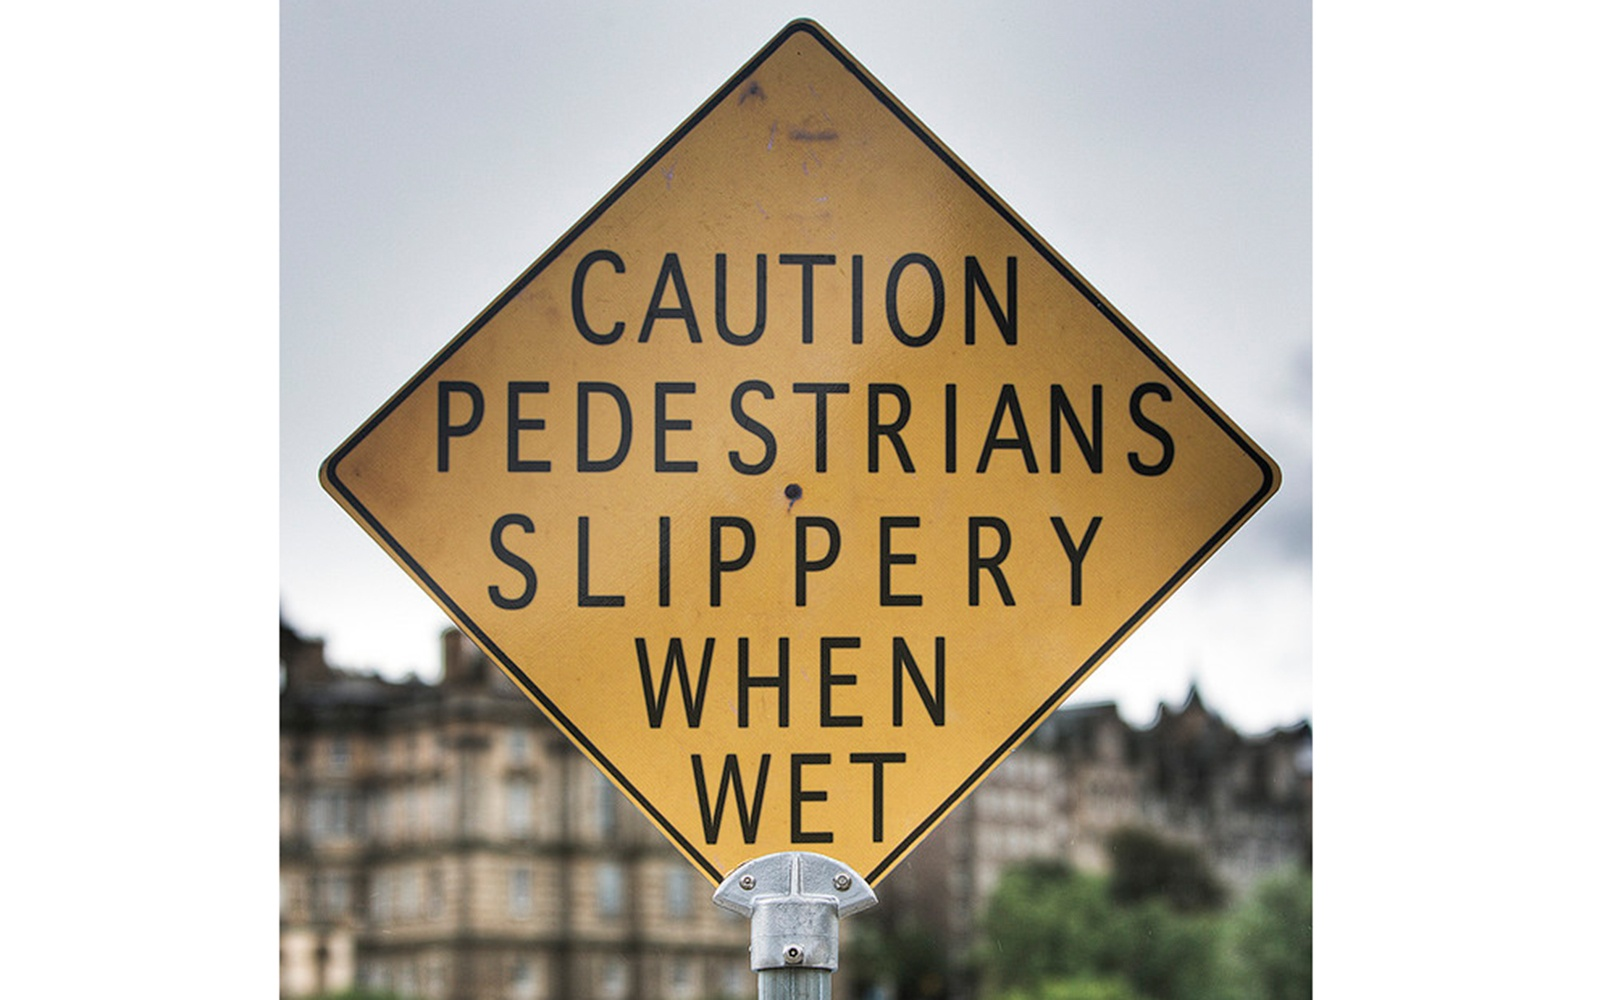 201209-w-funniest-signs-pedestrians-caution